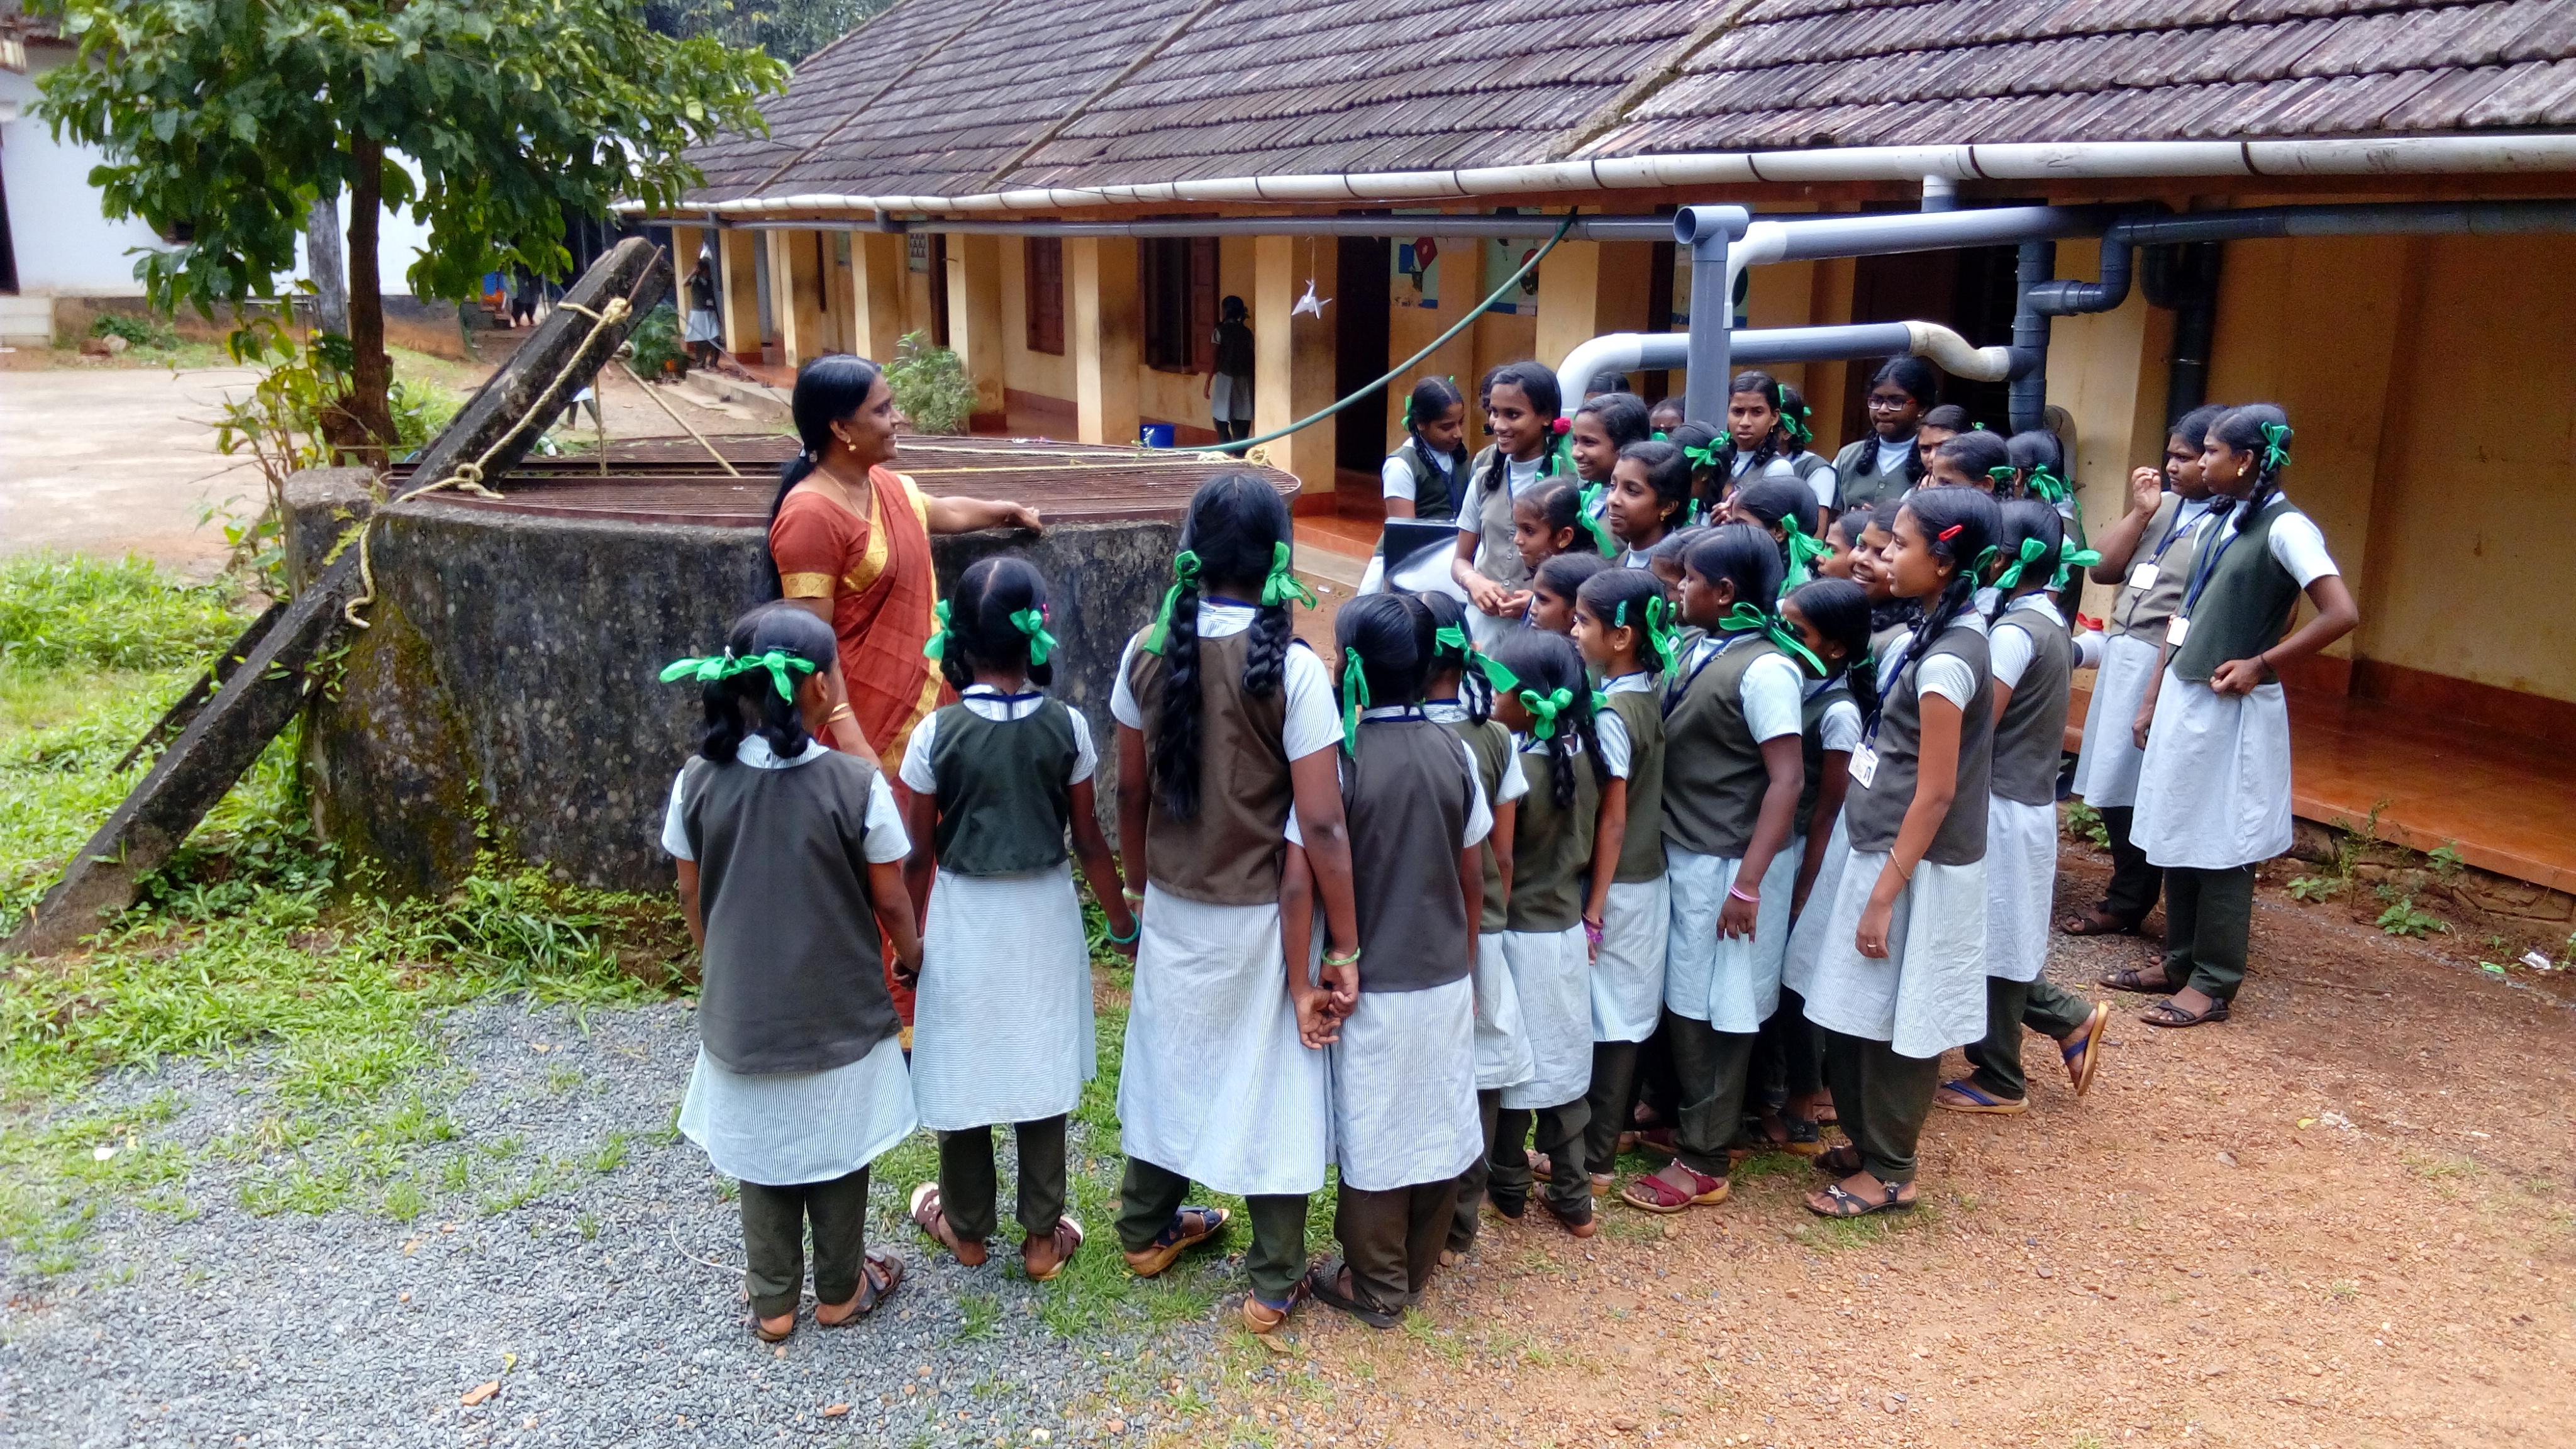 Demonstration of the Mazhapolima well recharging system at a school. (Source: Mazhapolima)